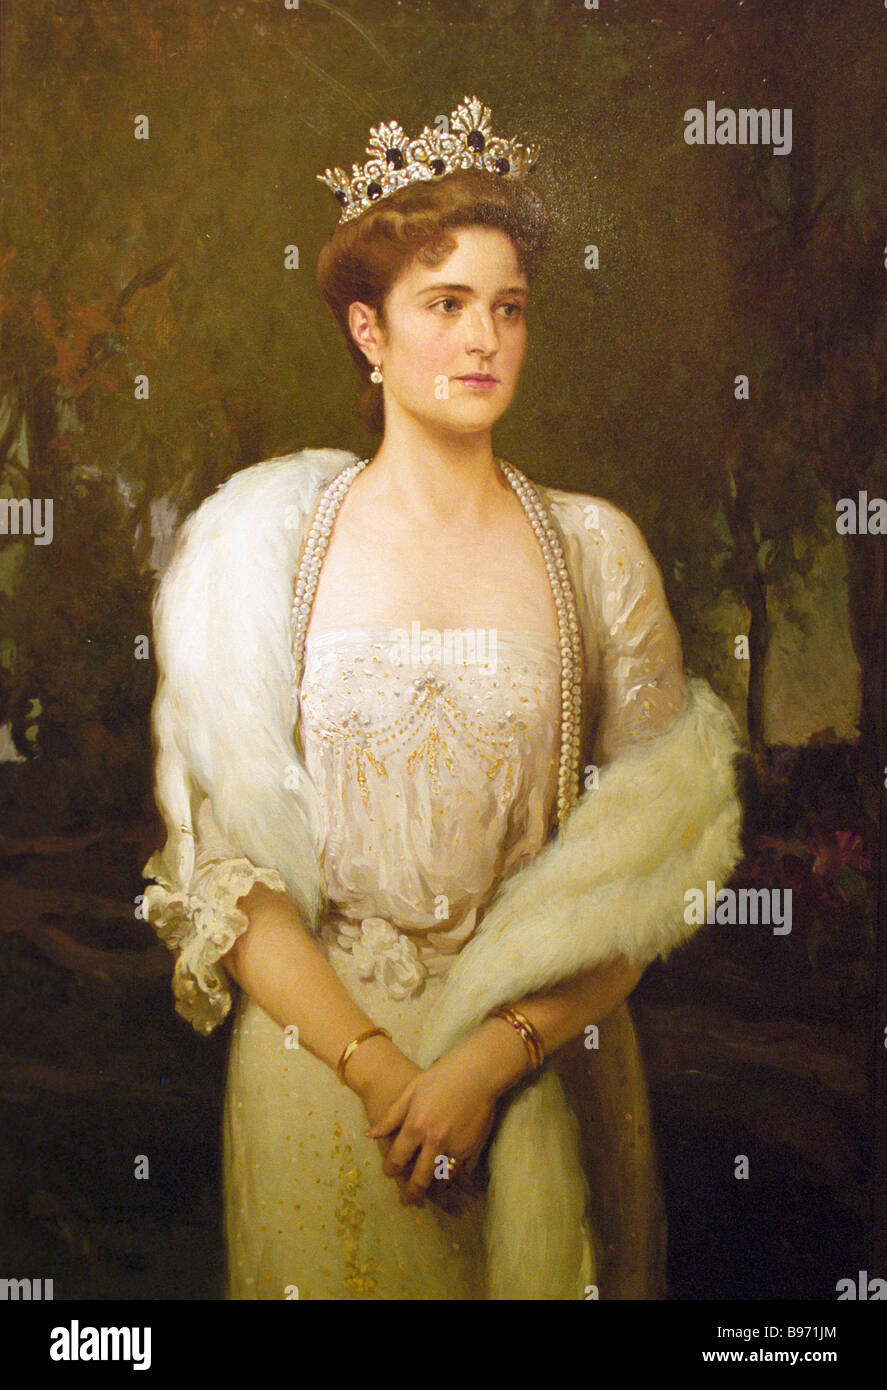 Portrait of Empress Alexandra consort of Russia s Emperor Nicholas II 1914 The painting appeared at the exposition - Stock Image